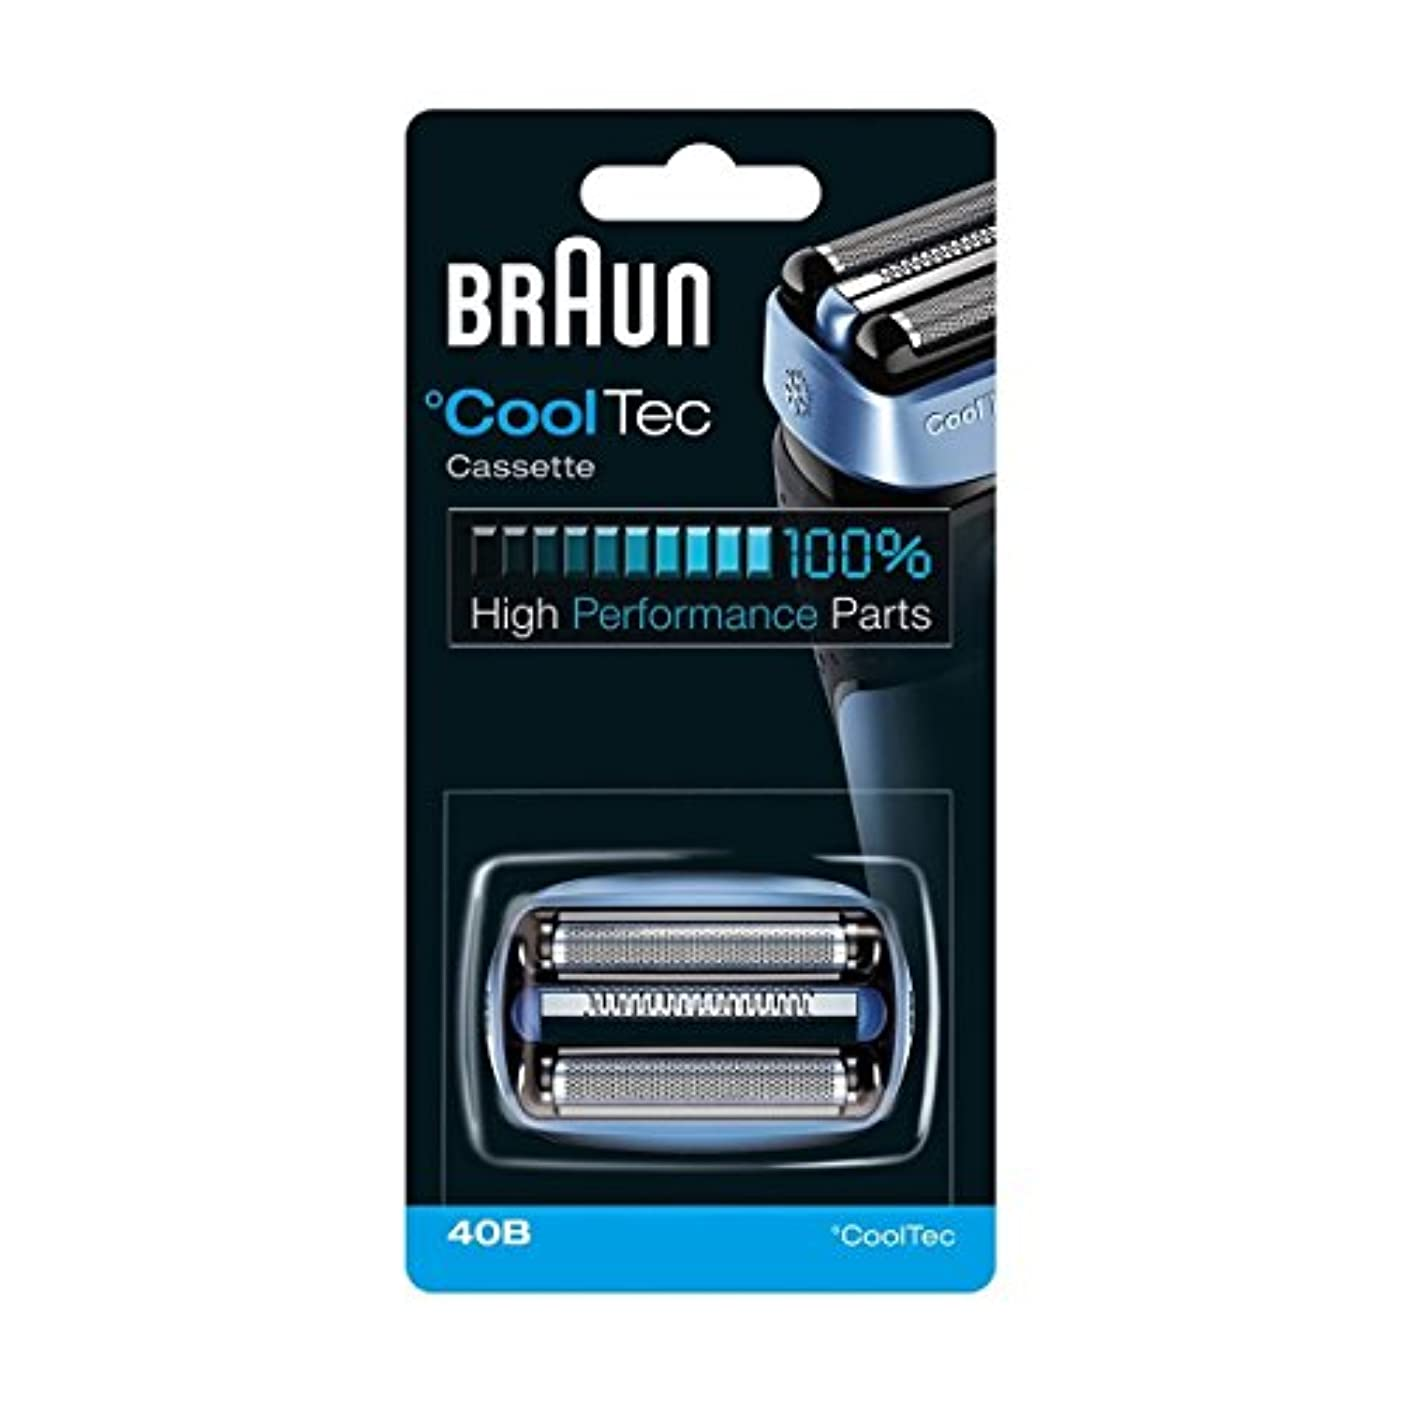 つまらない師匠試験【並行輸入品】BRAUN 40B Foil and Cutter Replacement Cartridge for CoolTec shavers series